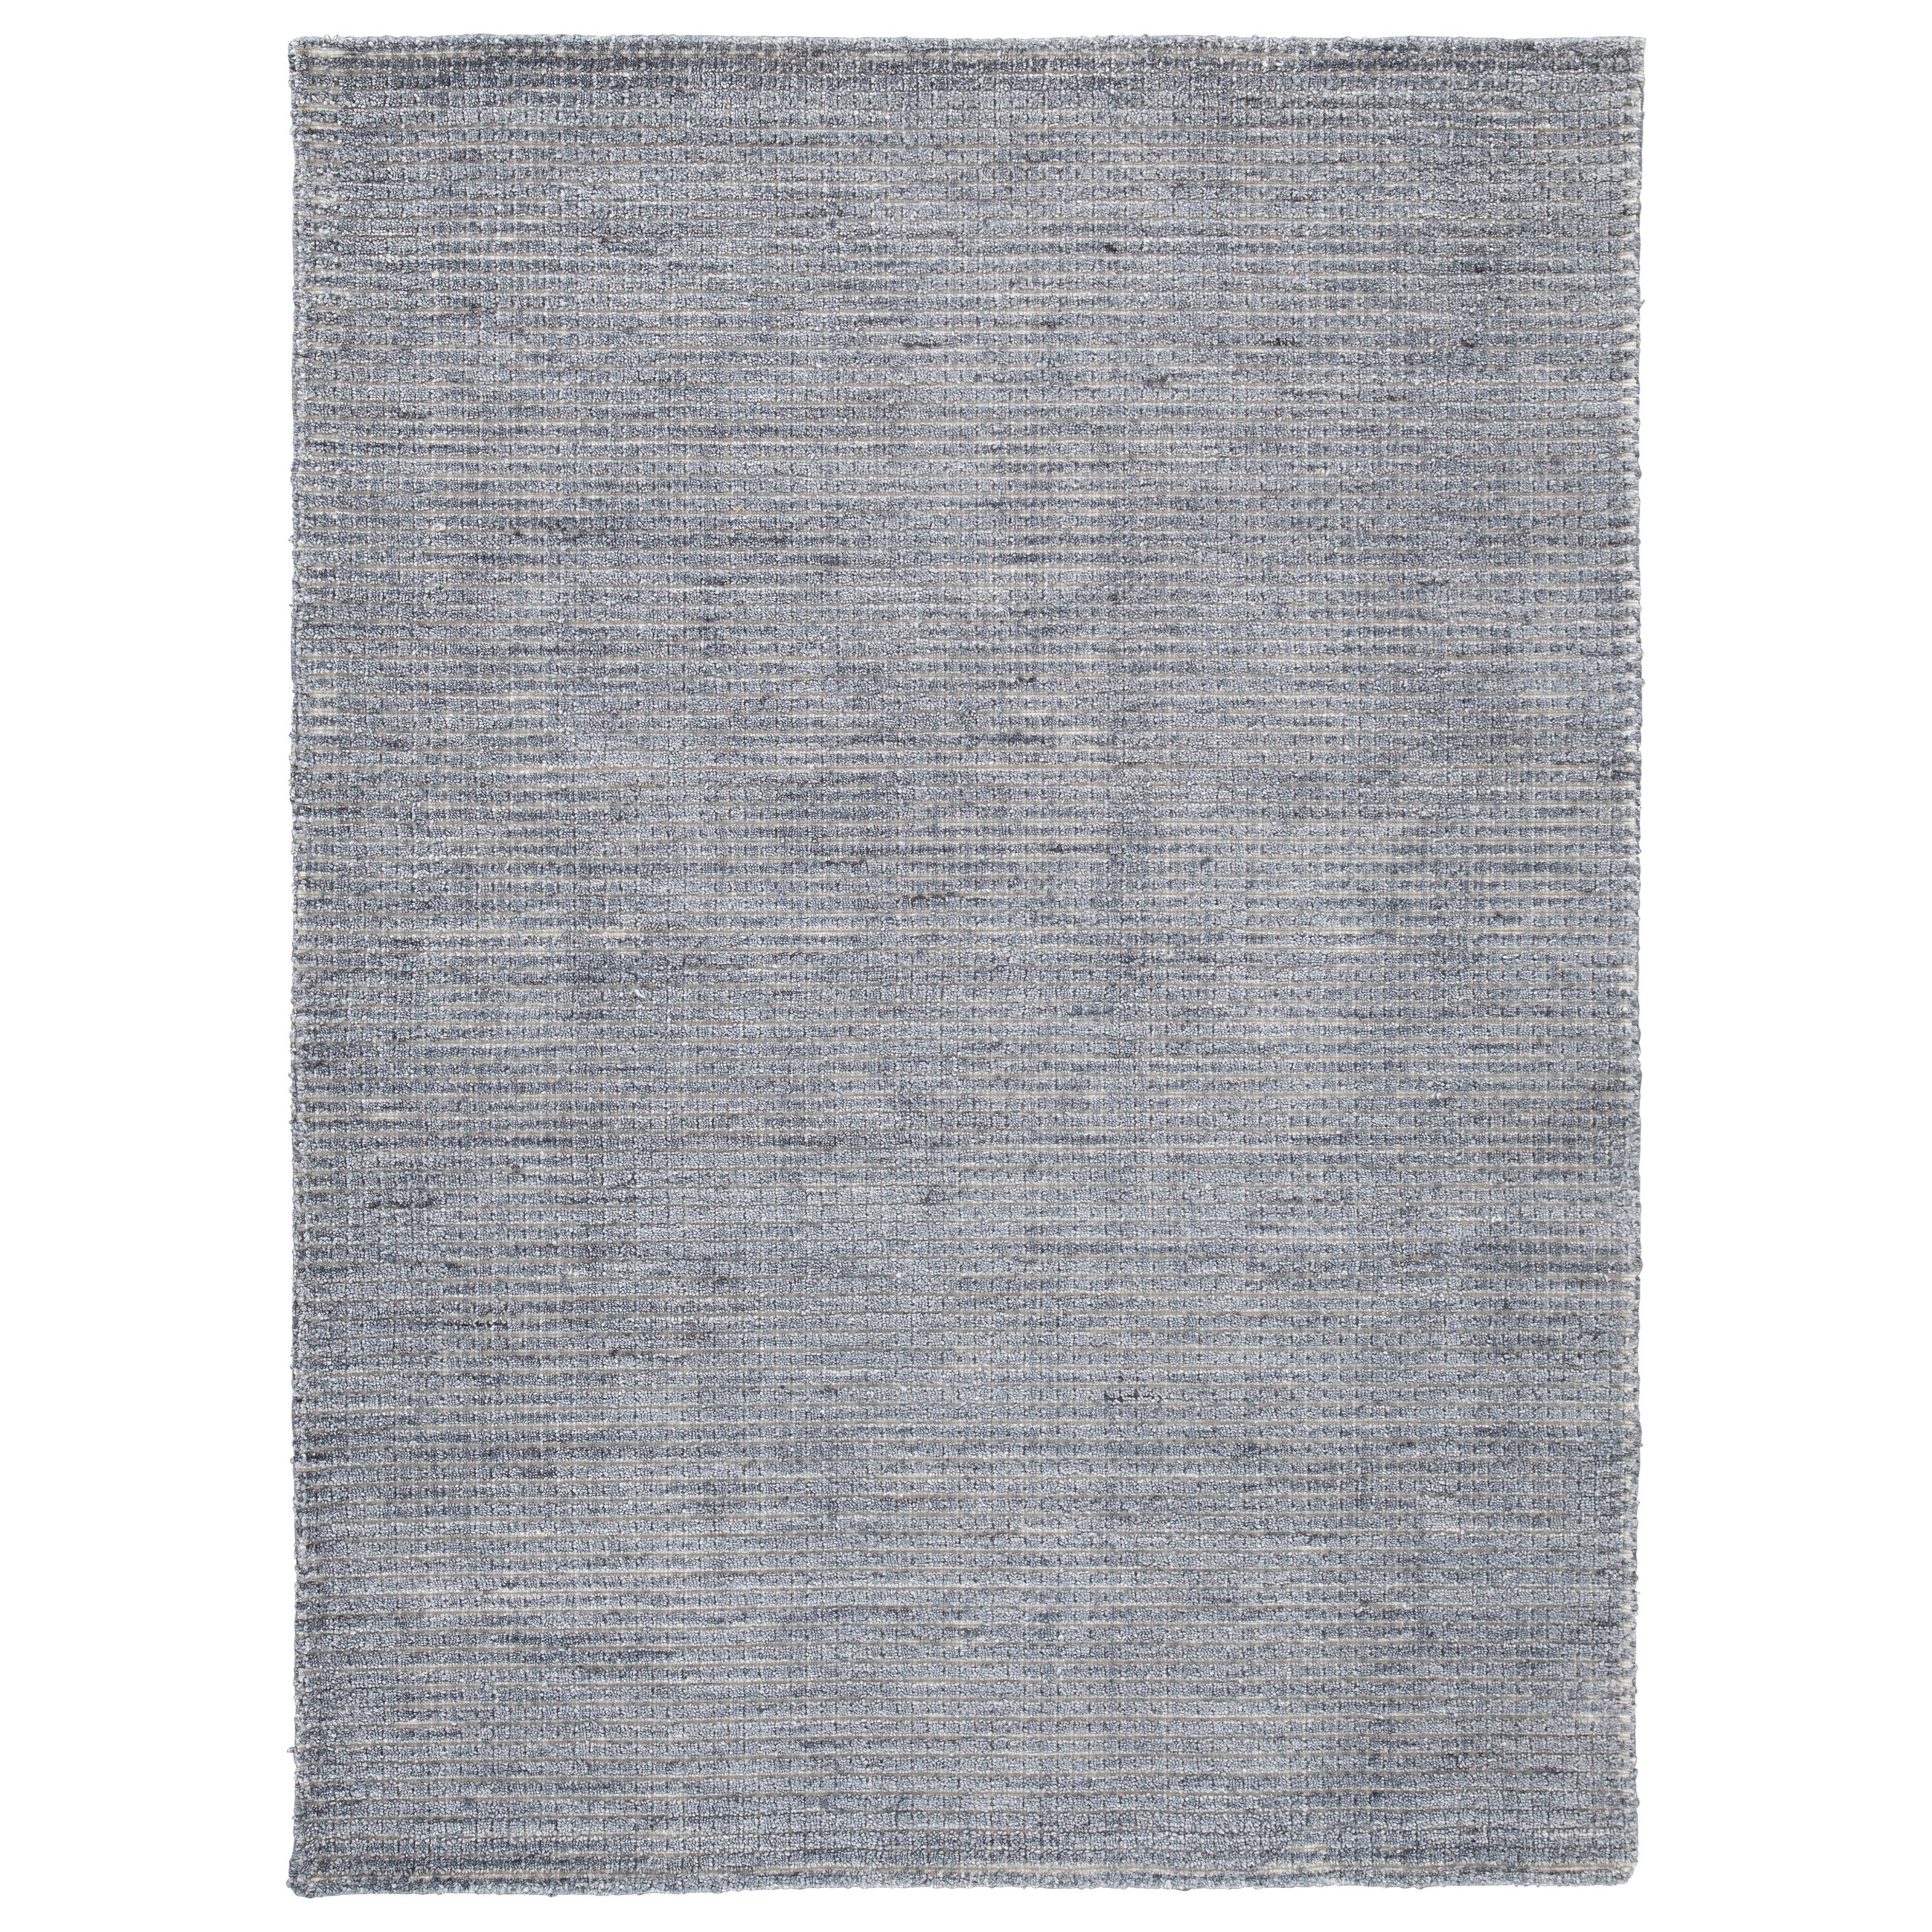 Contemporary Area Rugs Jonay Slate Gray Large Rug by Signature Design by Ashley at Zak's Home Outlet